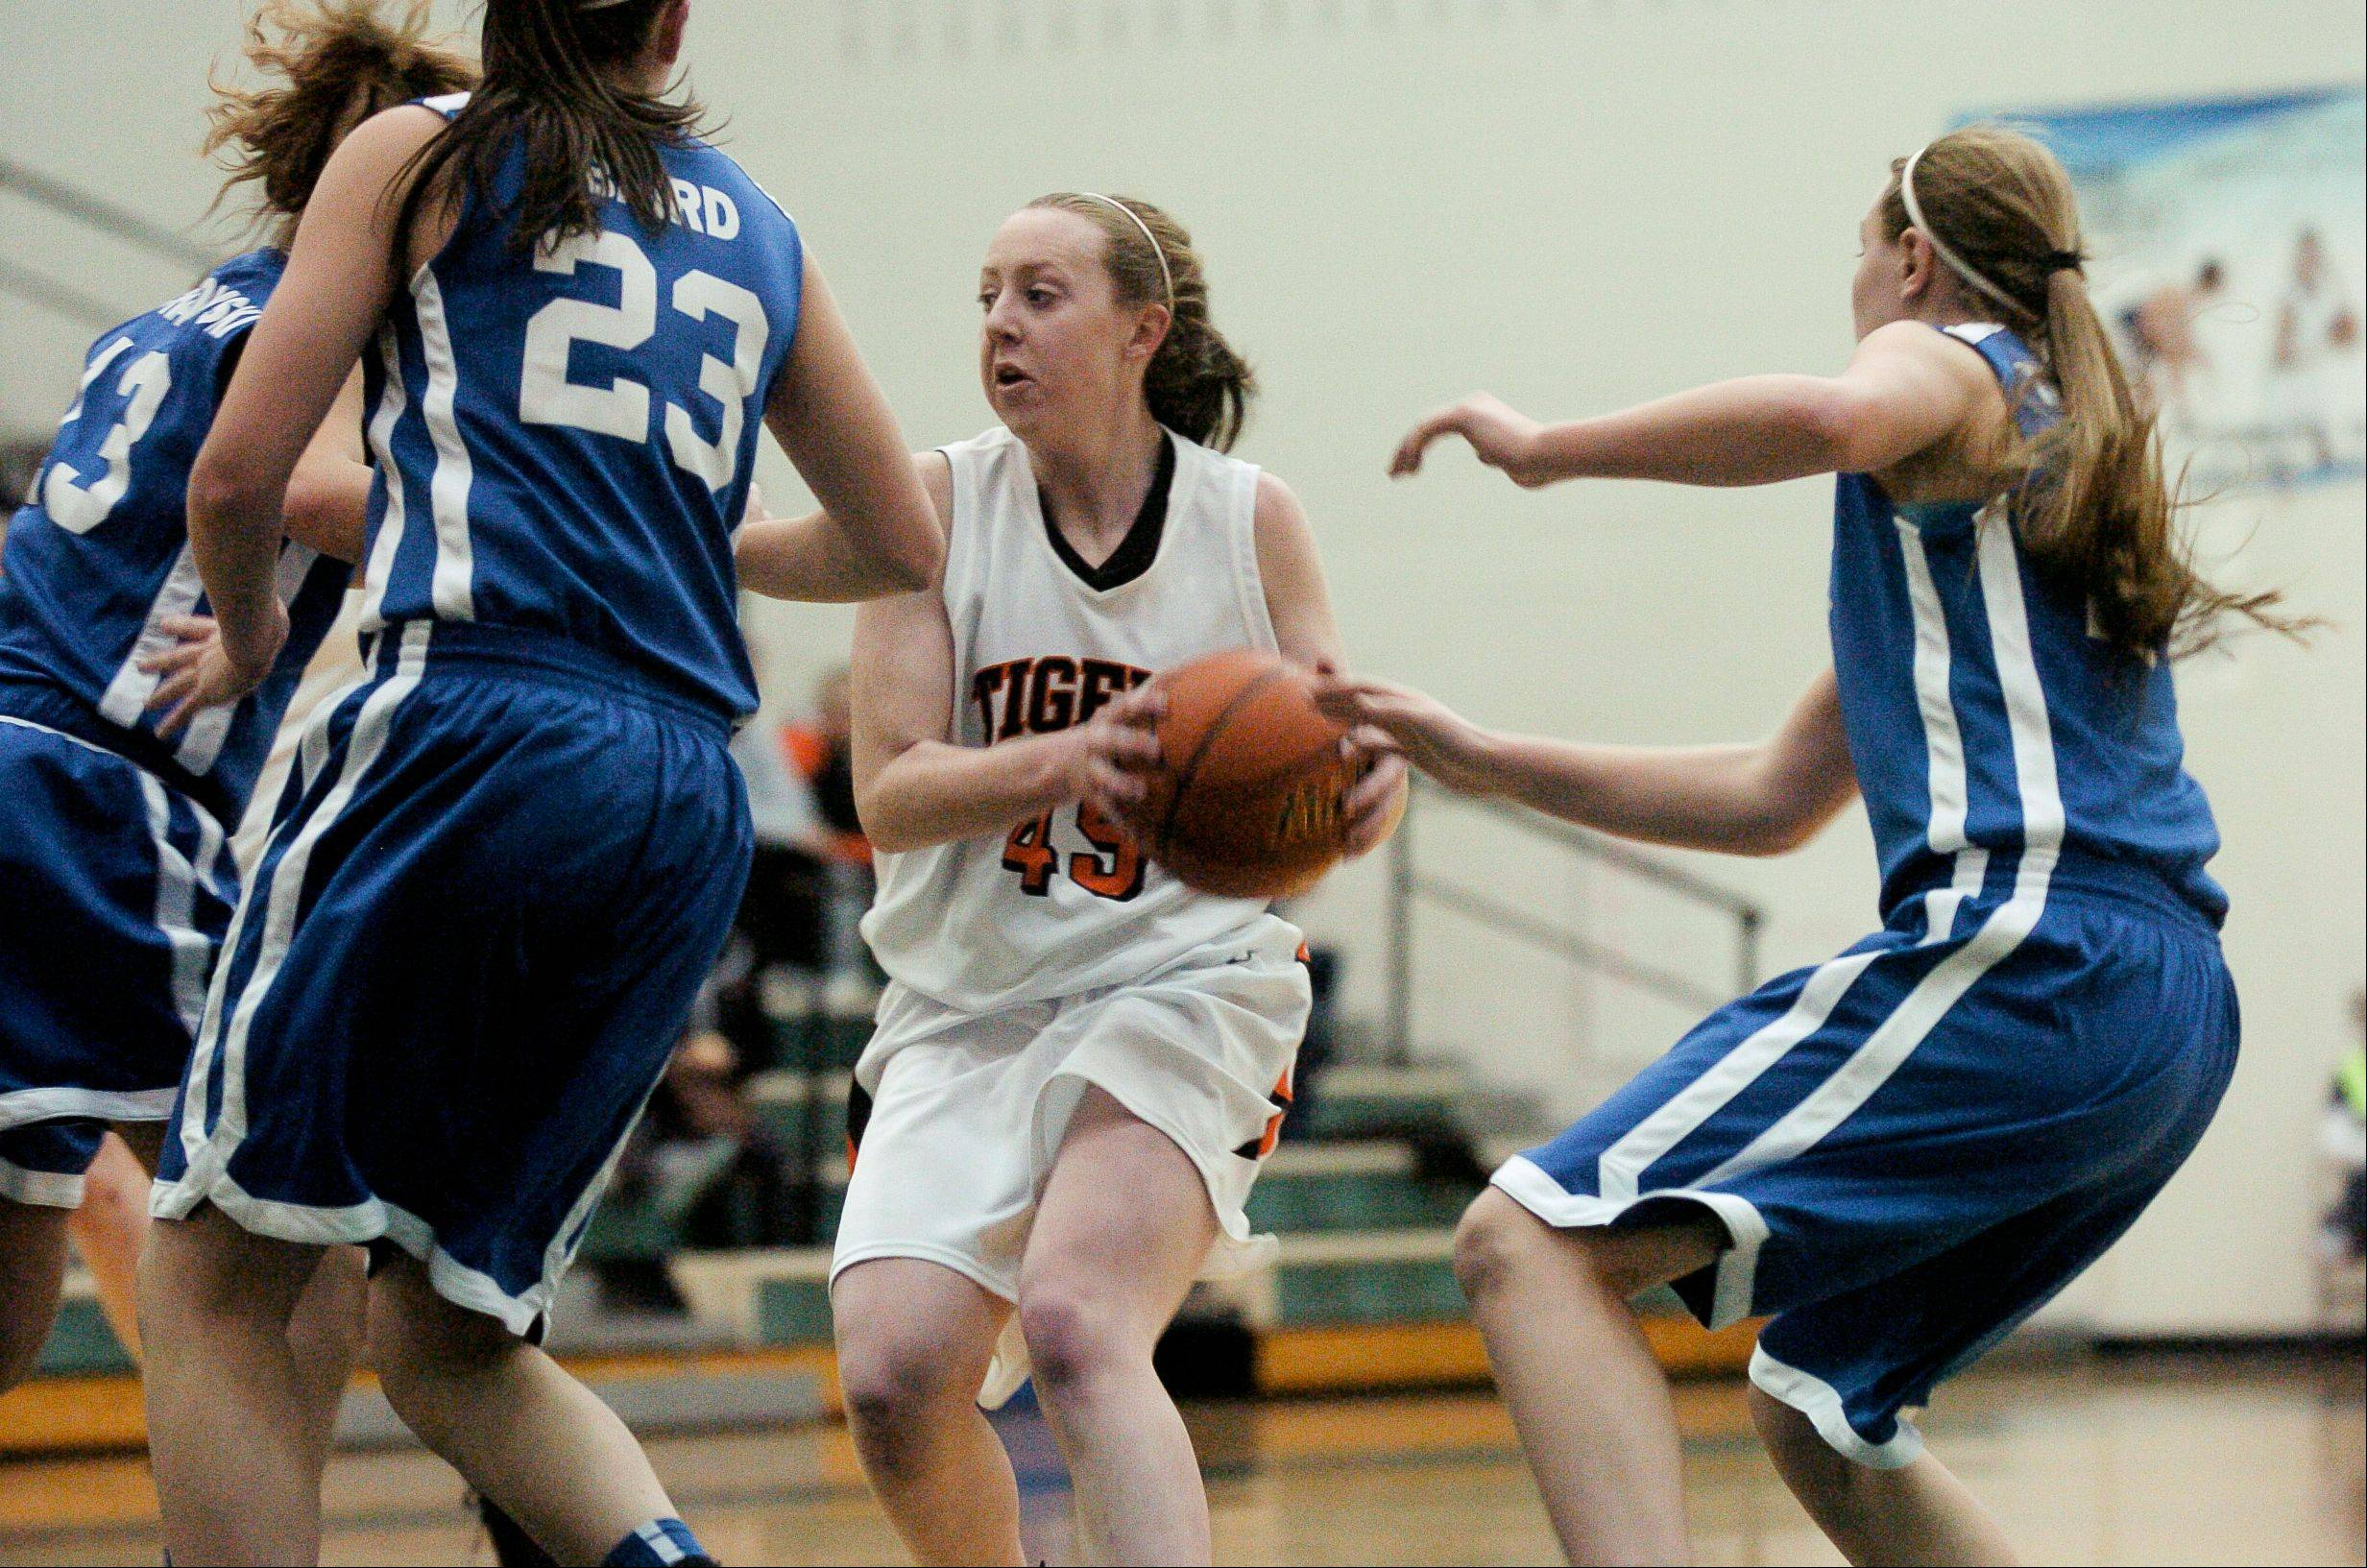 Images: Wheaton North vs. Wheaton Warrenville South, girls basketball